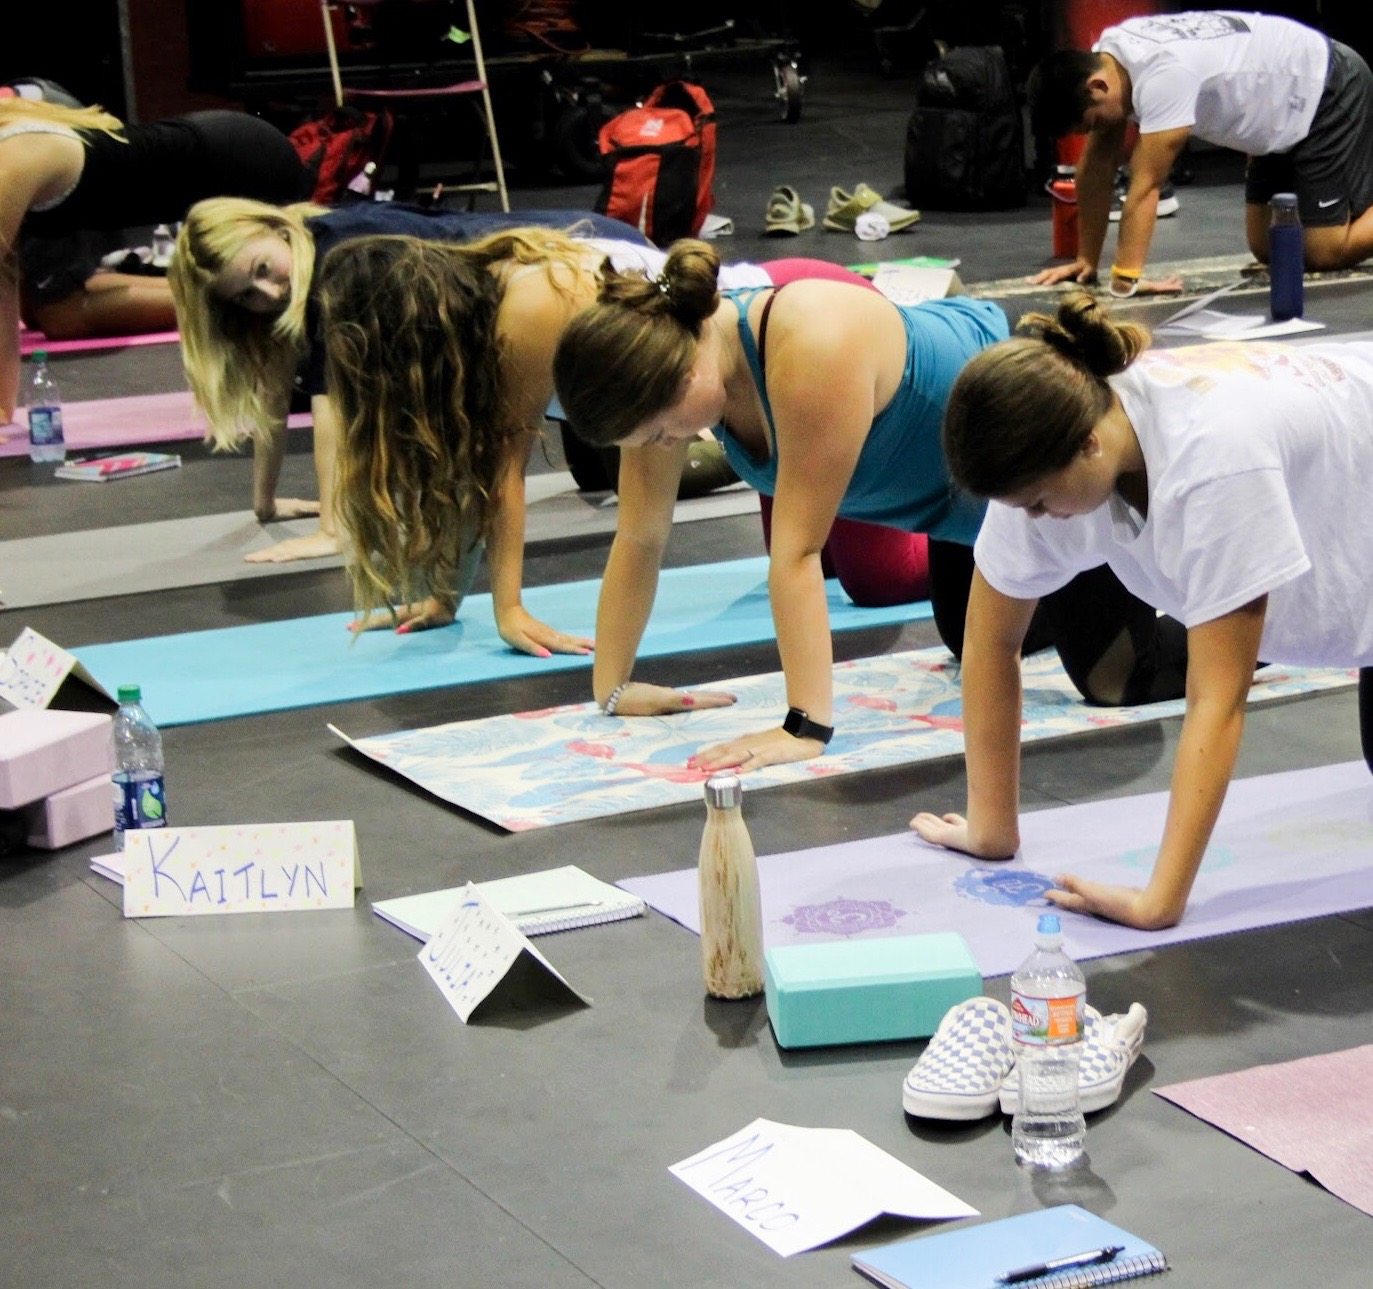 WORK+OUT%3A+Juniors+Kaitlyn+Holl+and+Julia+Noya+work+on+yoga+poses+in+Hamilton+class+on+Aug.+29.+Students+use+yoga+mats+to+complete+the+exercise+and+have+blocks+to+use+as+well.+%E2%80%9CFrom+the+class%2C+I+am+hoping+to+discover+new+poses+to+help+strengthen+my+muscles+and+to+gain+more+flexibility%2C%E2%80%9D+junior+Kaitlyn+Holl+said.